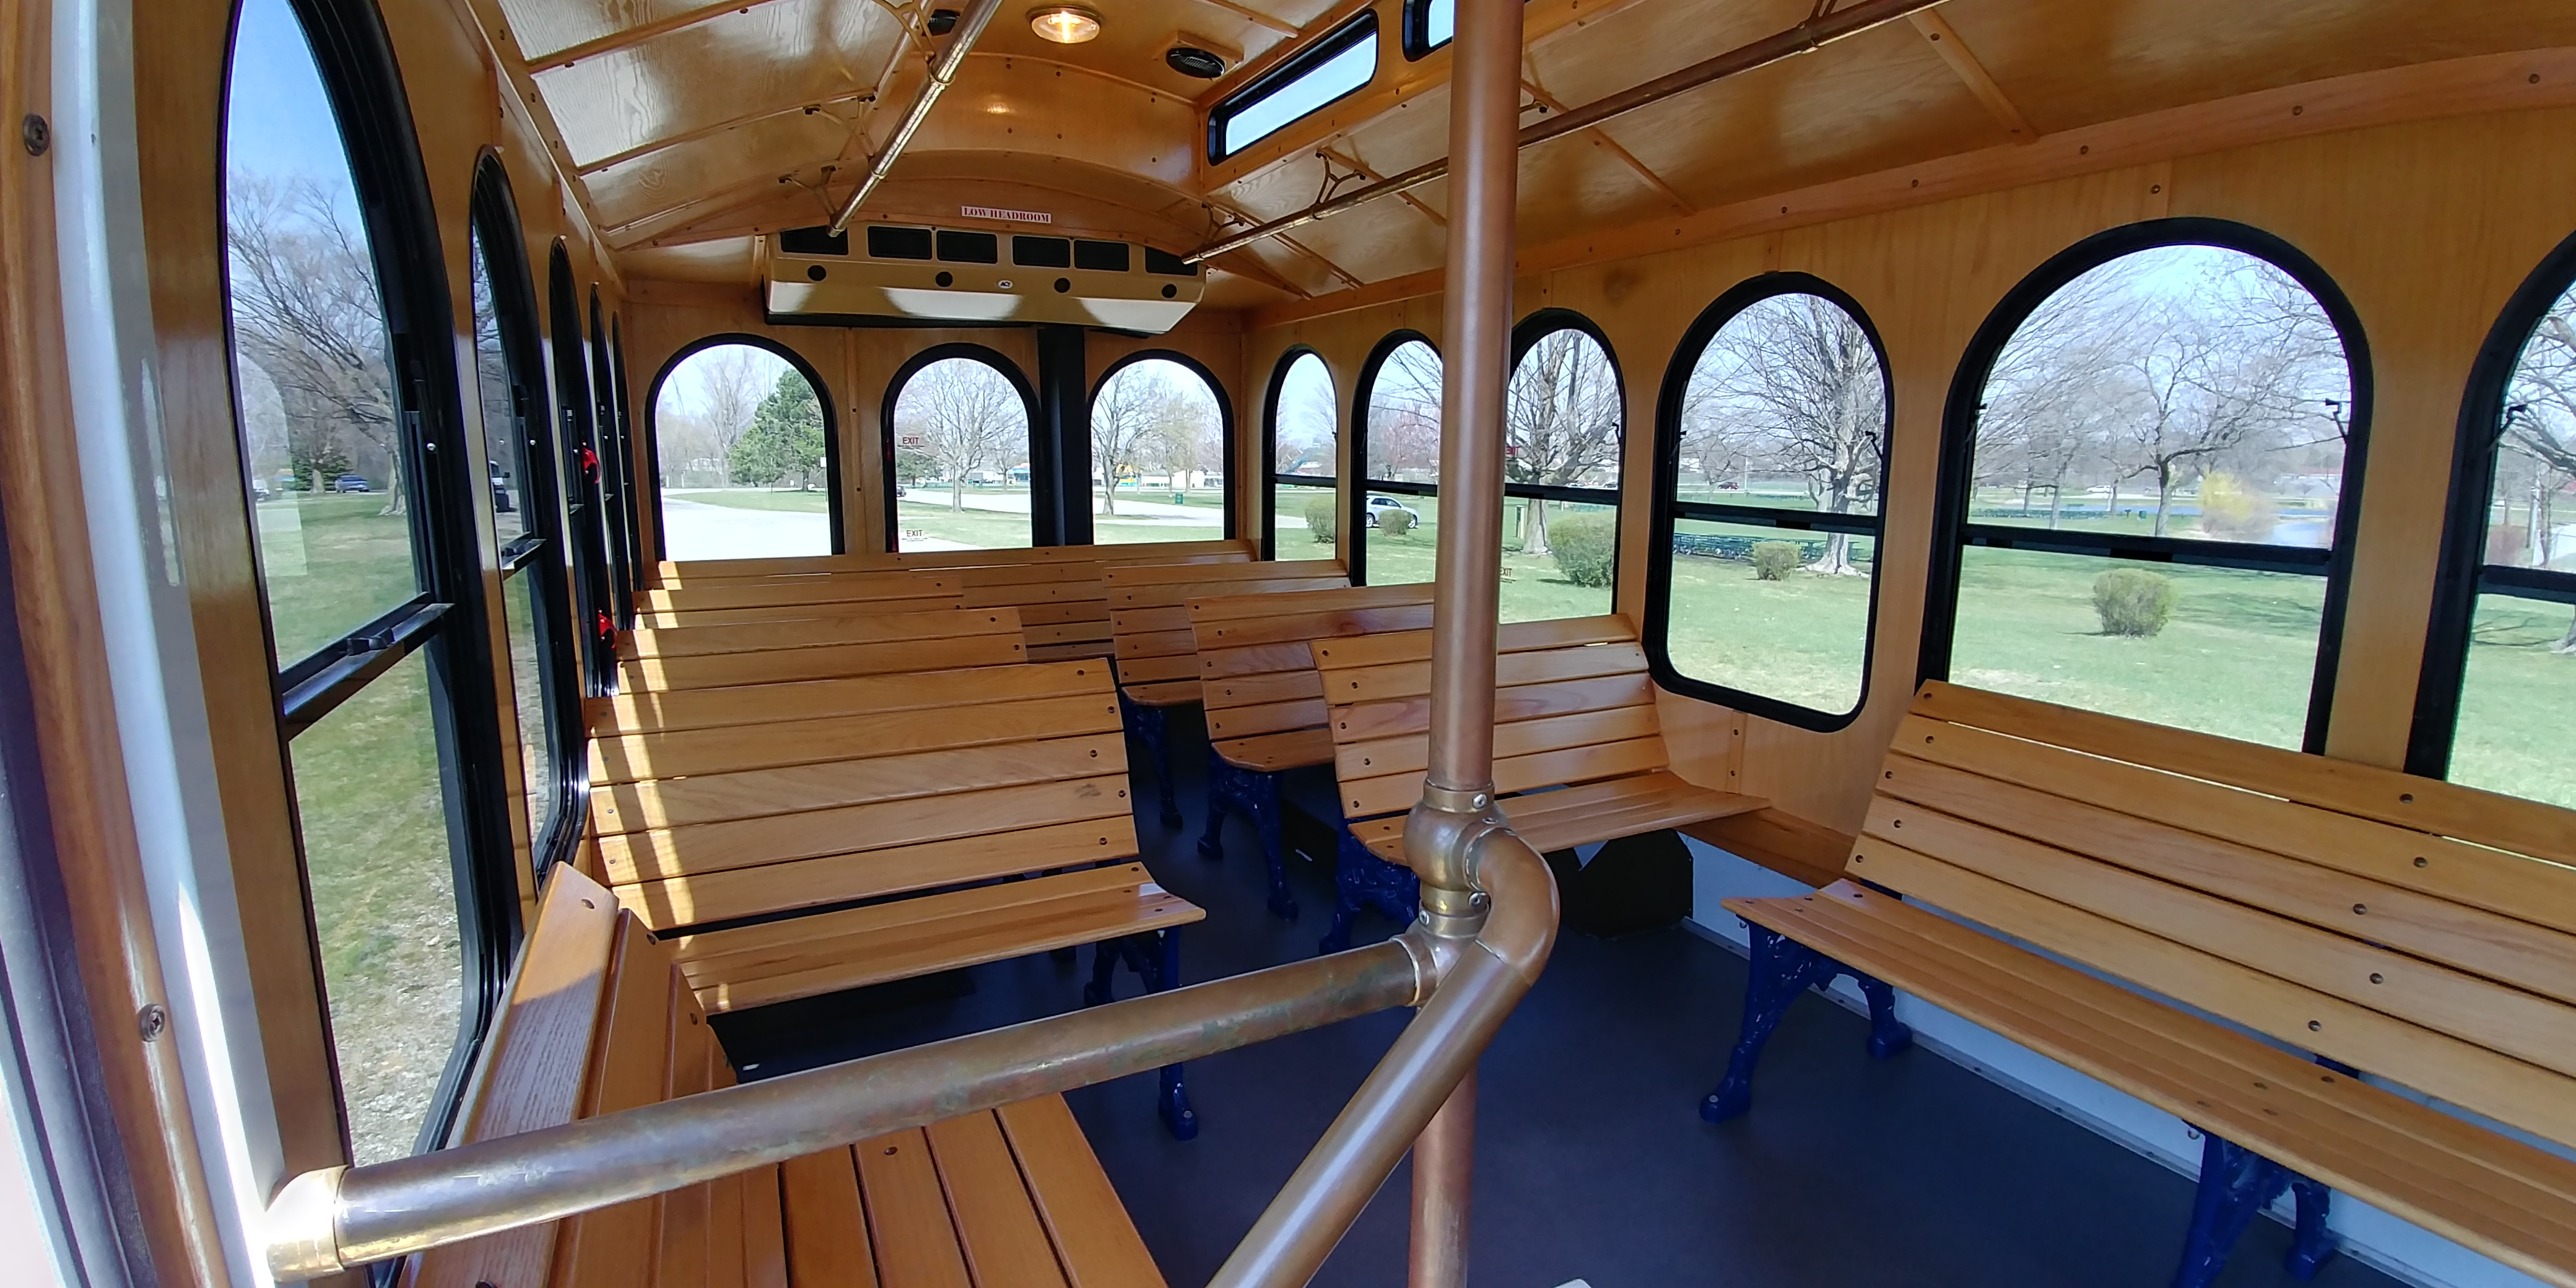 24 Passenger Trolley Interior 1